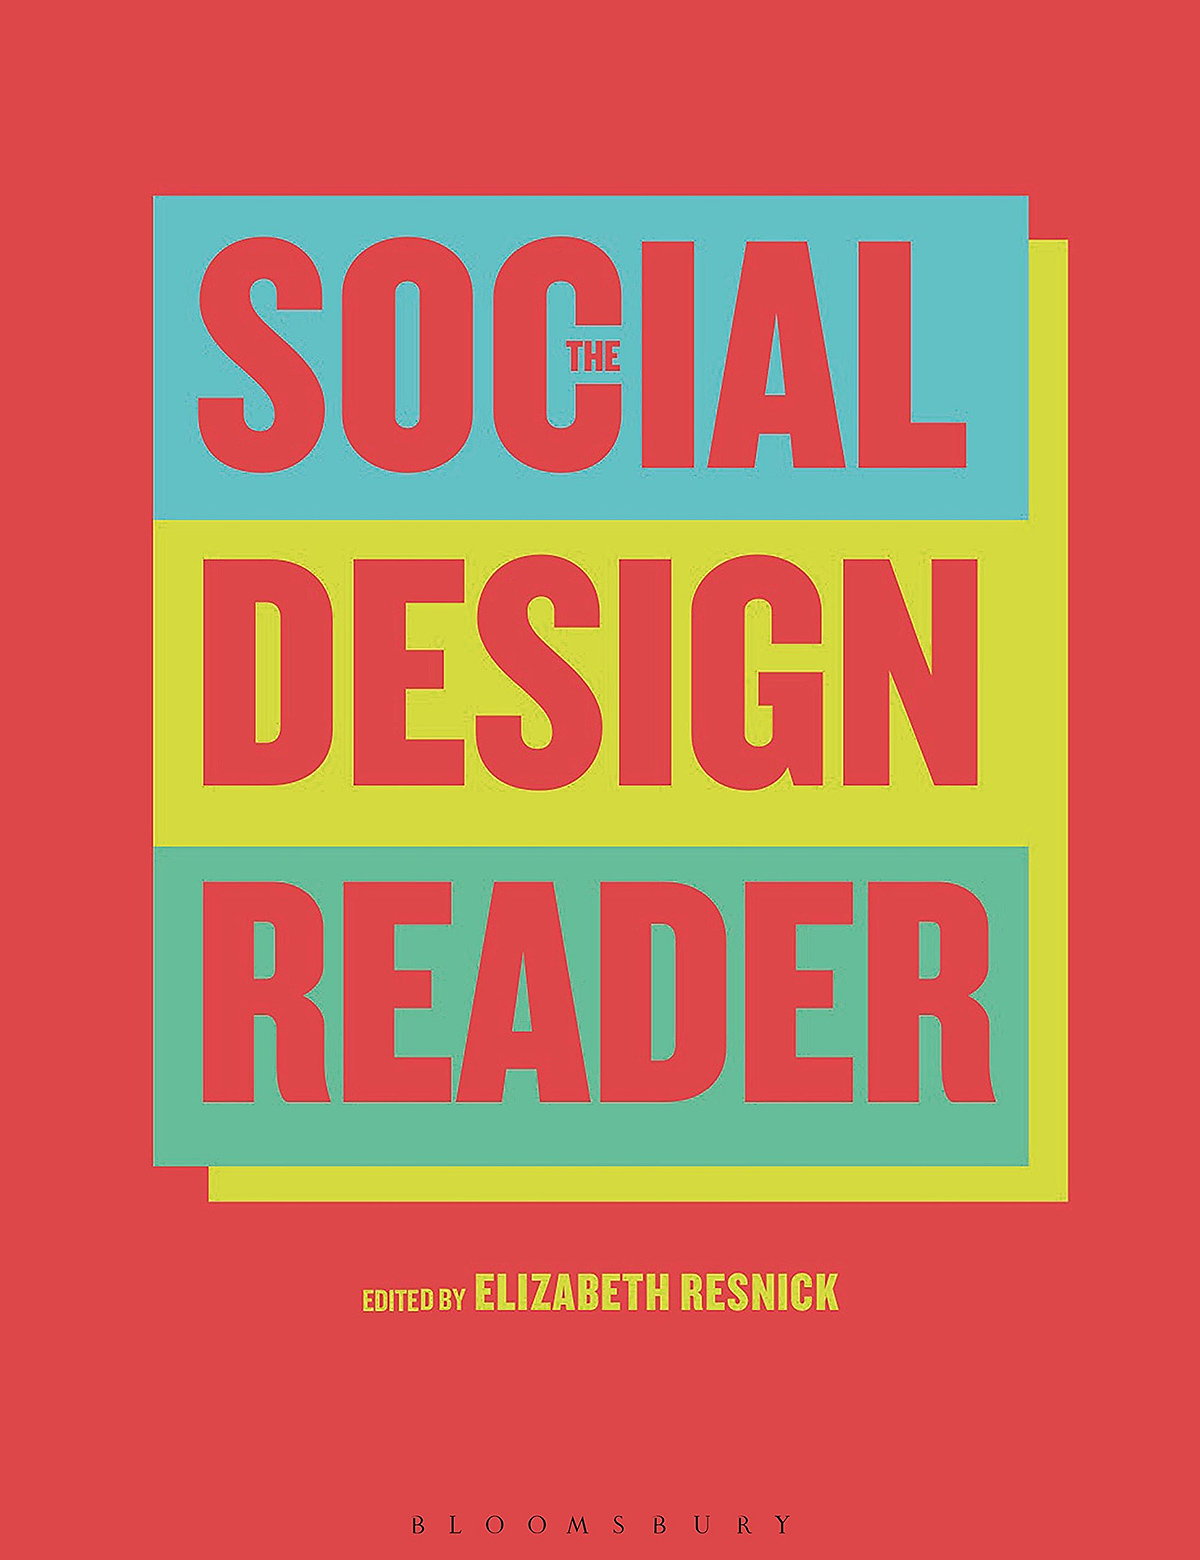 The Social Design Reader